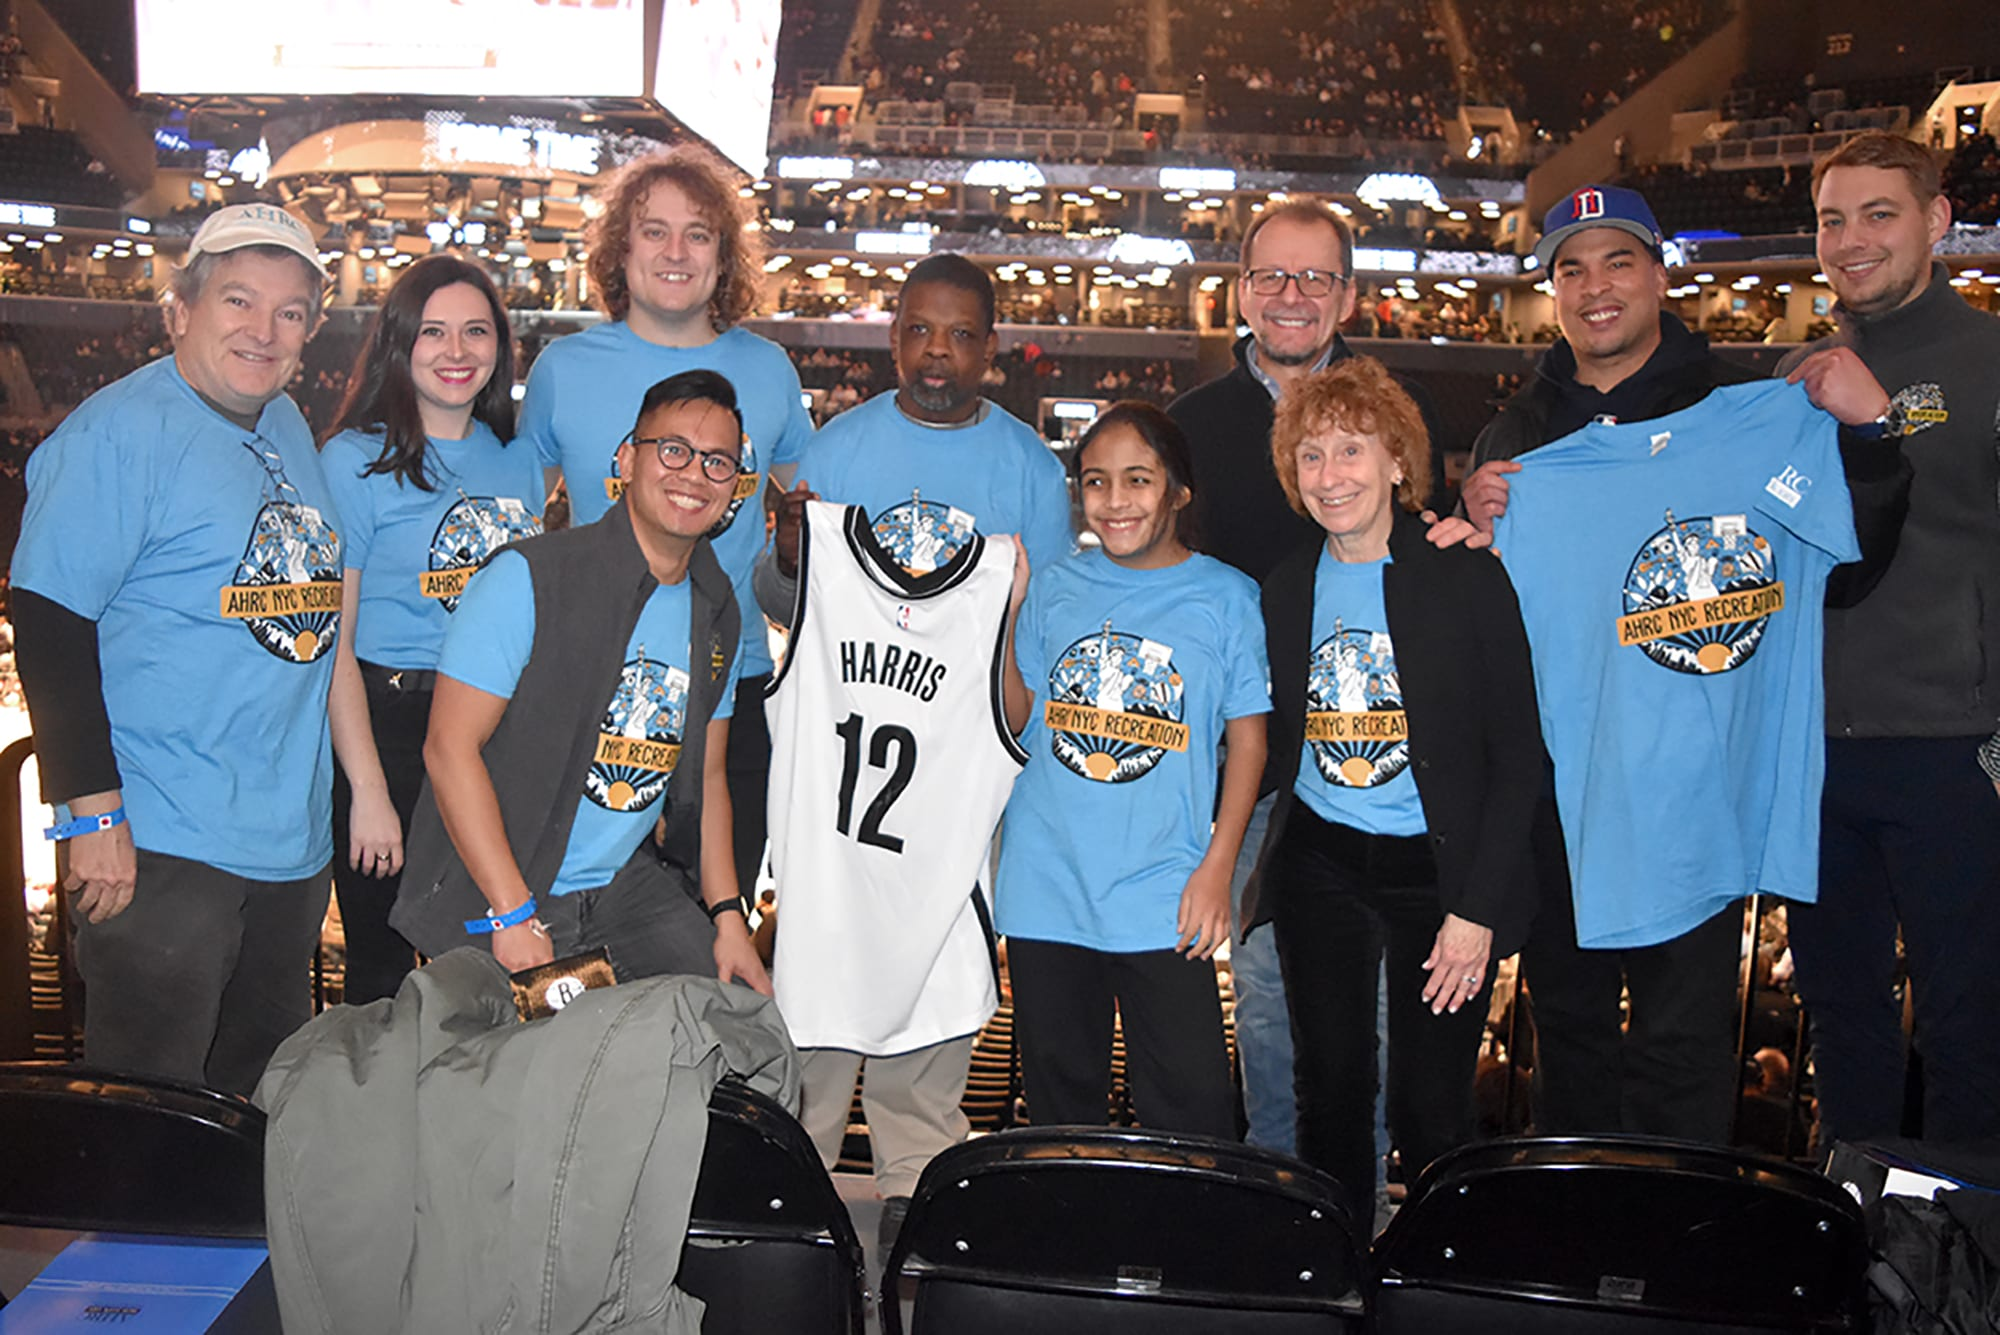 AHRC NYC leadership, Camping and Recreation staff members, and people supported before the January 31 Nets game.